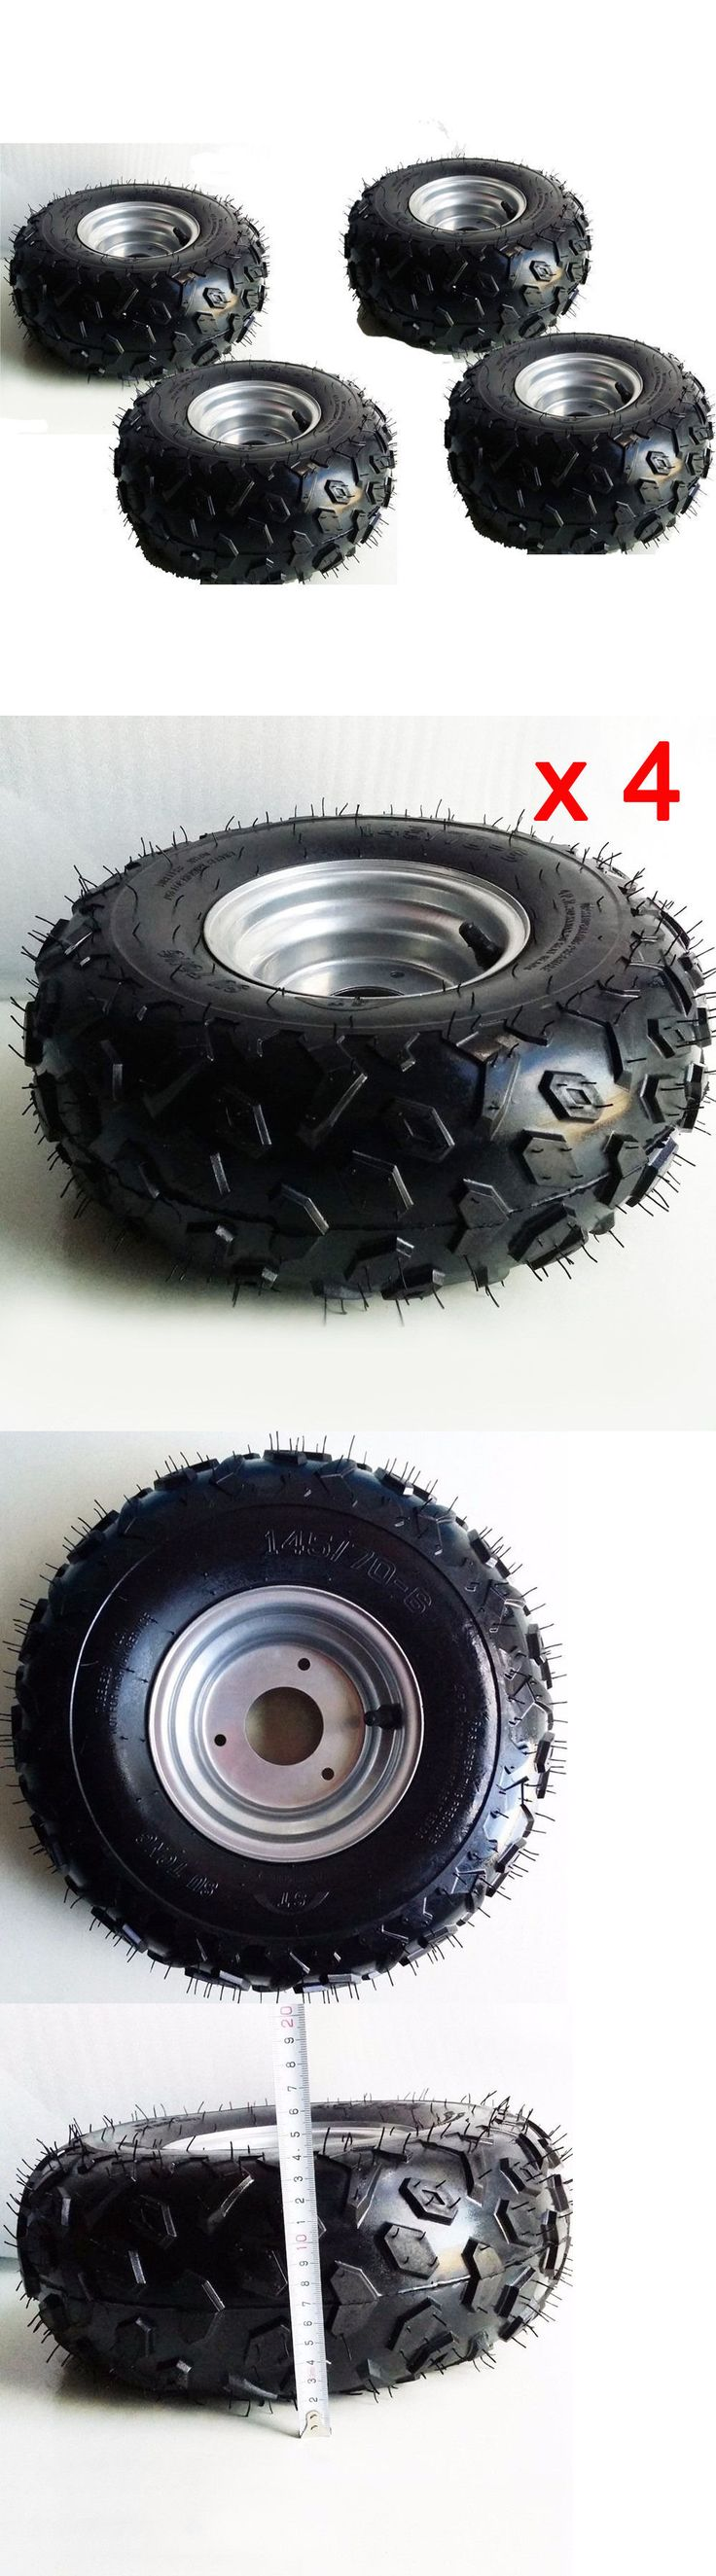 Parts and Accessories 64657: 4X Go-Kart Atv Tire With Wheel Assembly 145/70-6 Rim Go Kart Mini Bike BUY IT NOW ONLY: $99.99